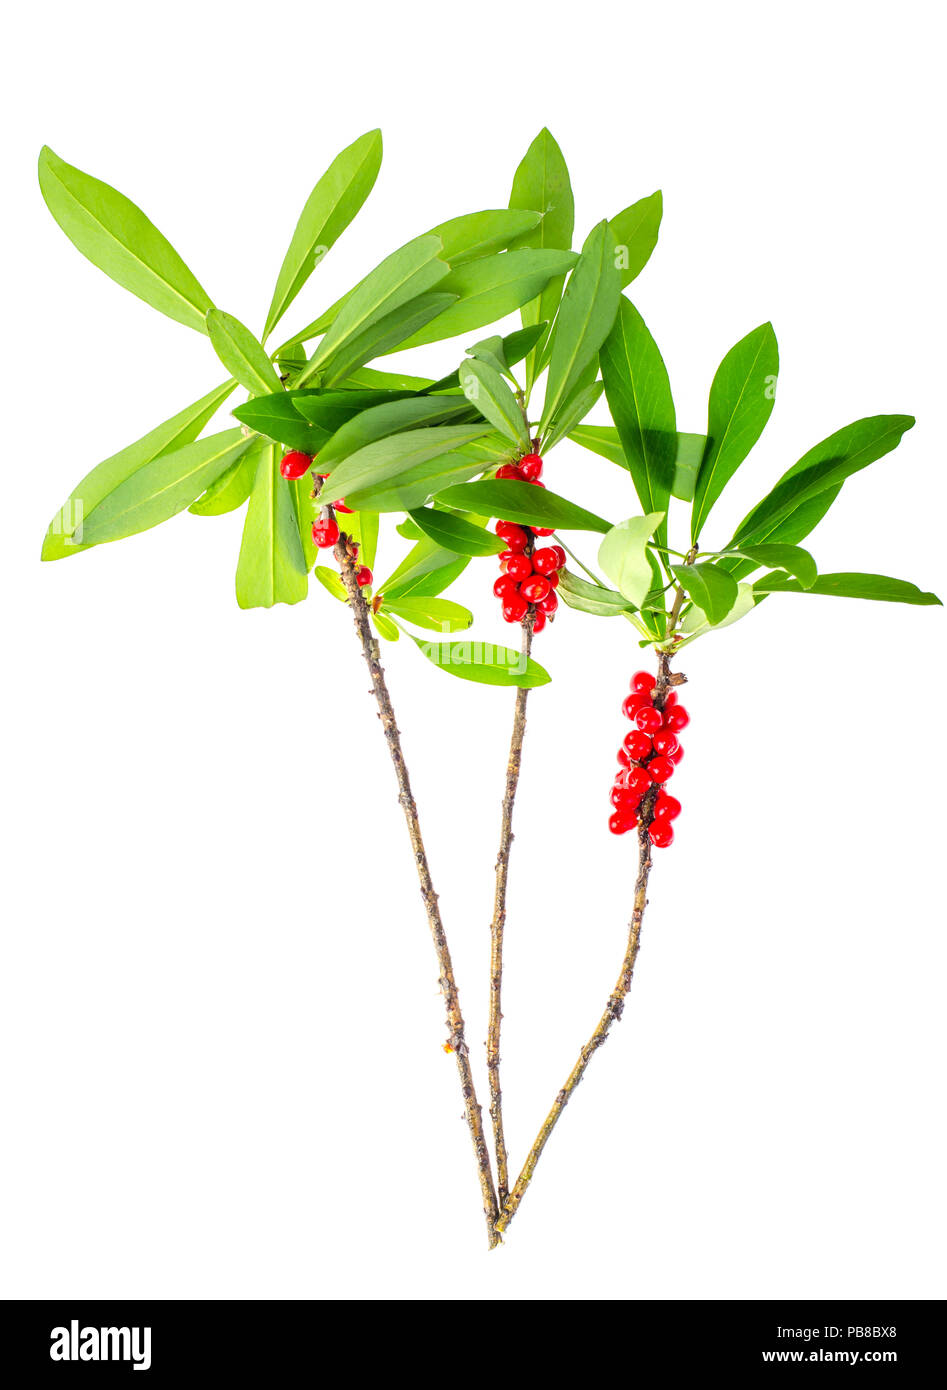 Branch of wild plant with green leaves and red berries. Studio Photo - Stock Image